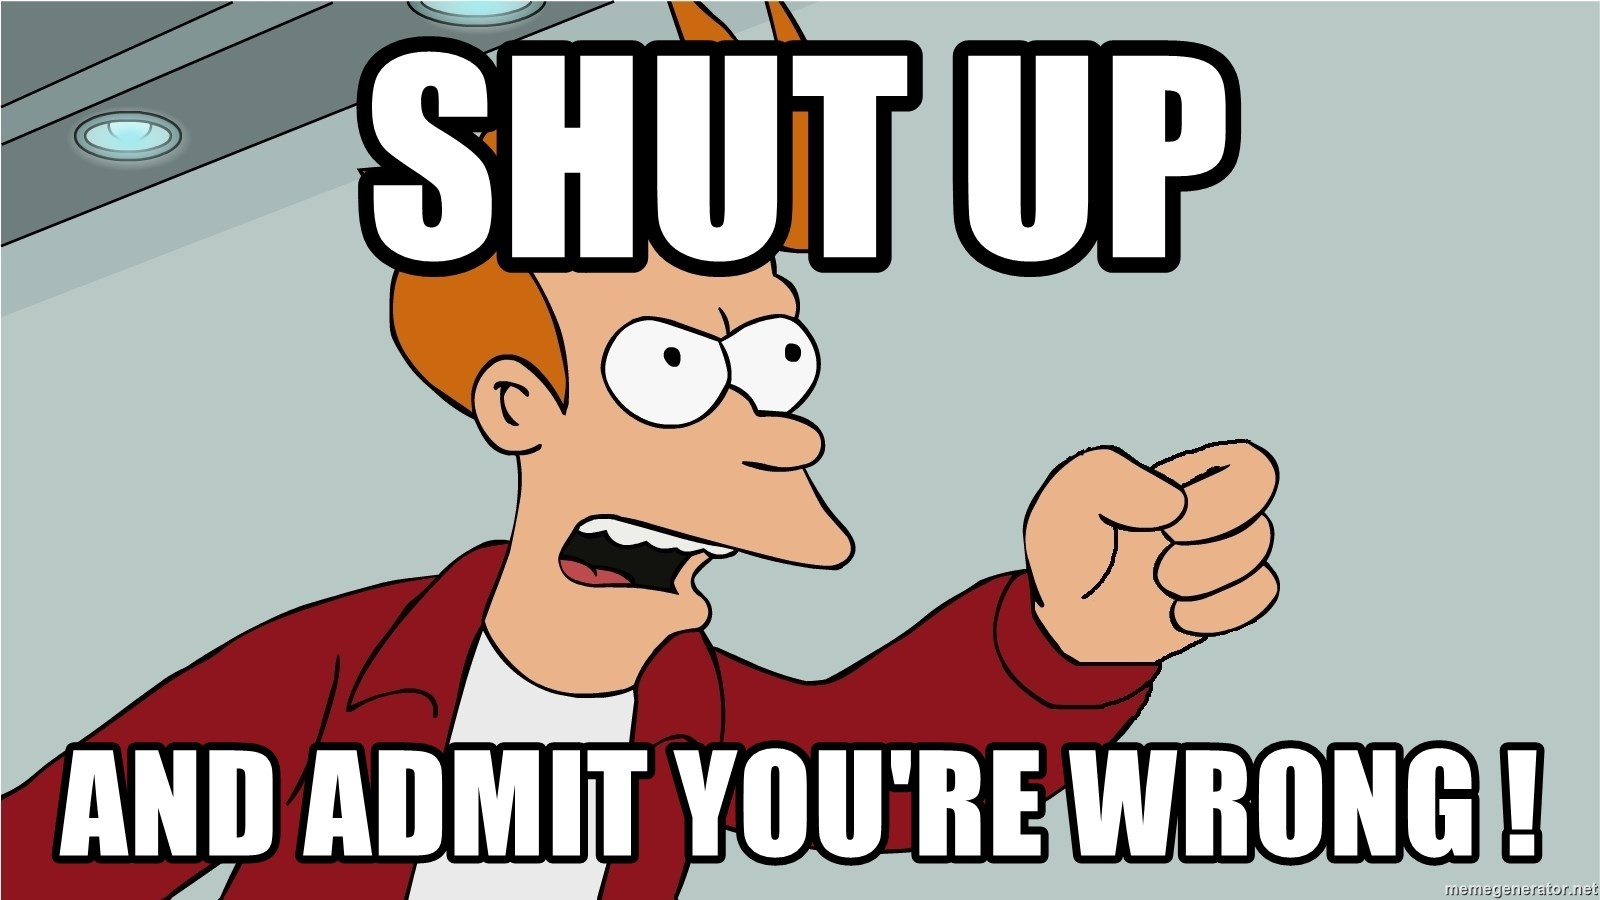 Shut up And admit you're wrong ! - shut up and take my money gift card |  Meme Generator